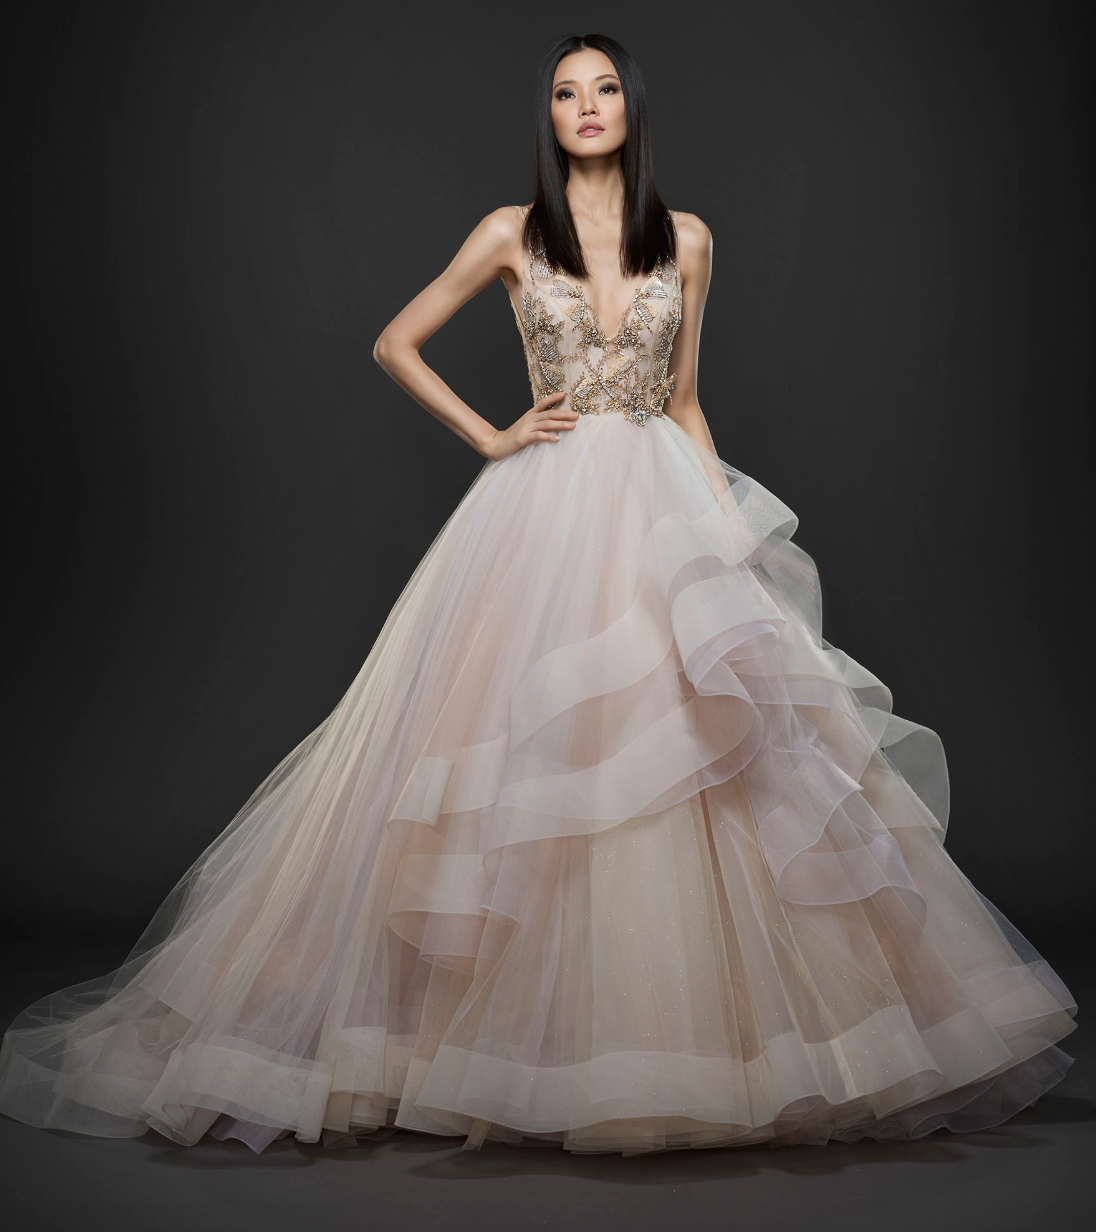 Colorful Bridal Gowns to Wear on Your Wedding Day | JLM Couture